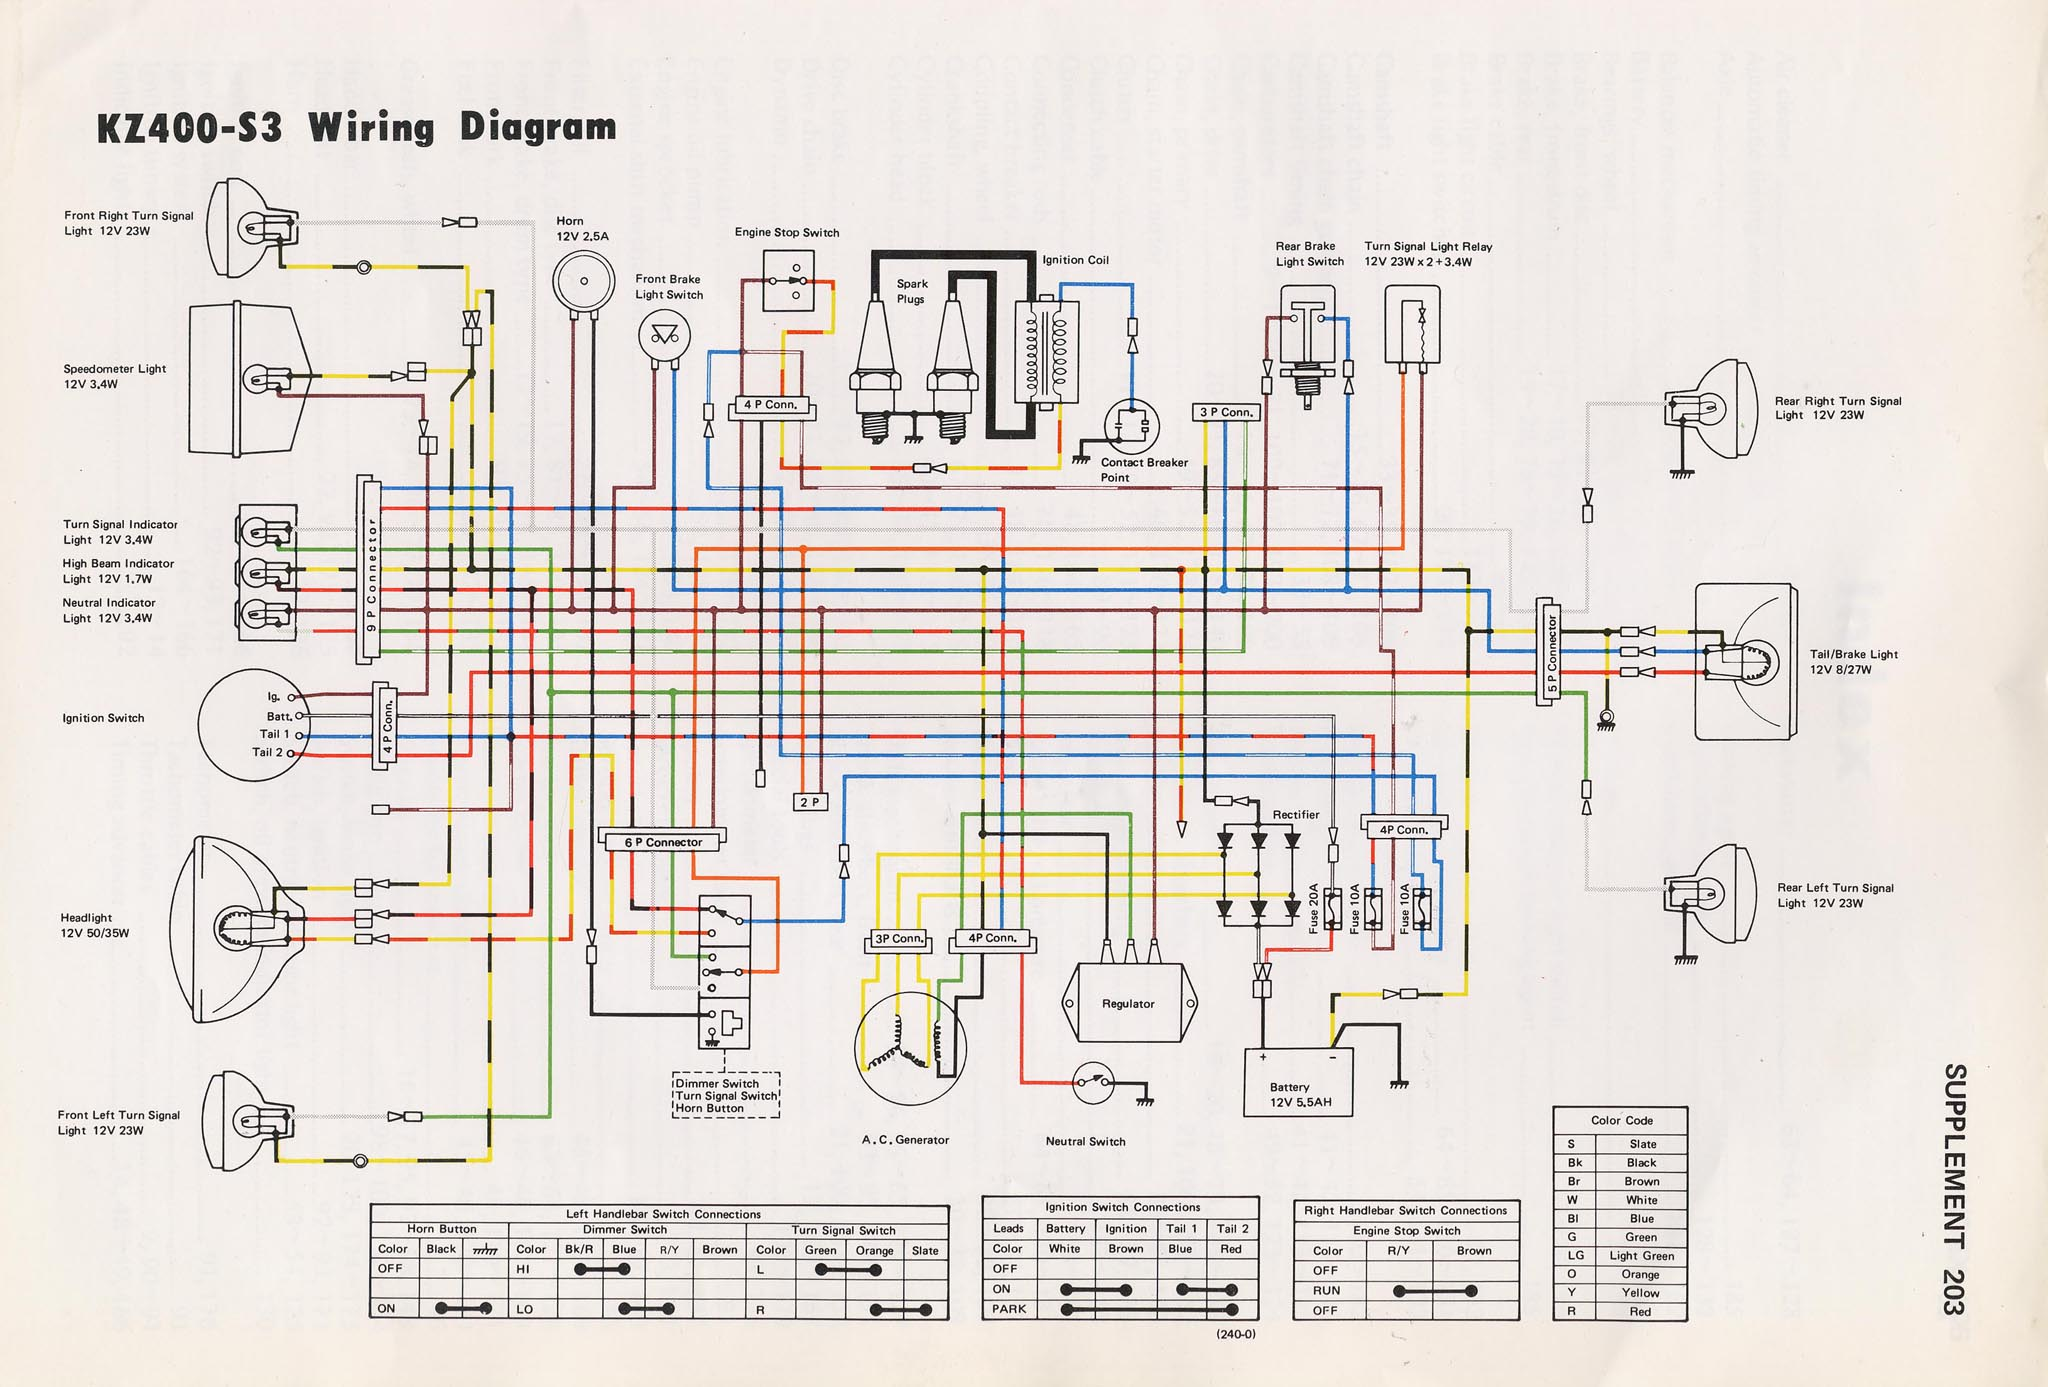 kz400 simple wiring diagram kz400 wiring help.